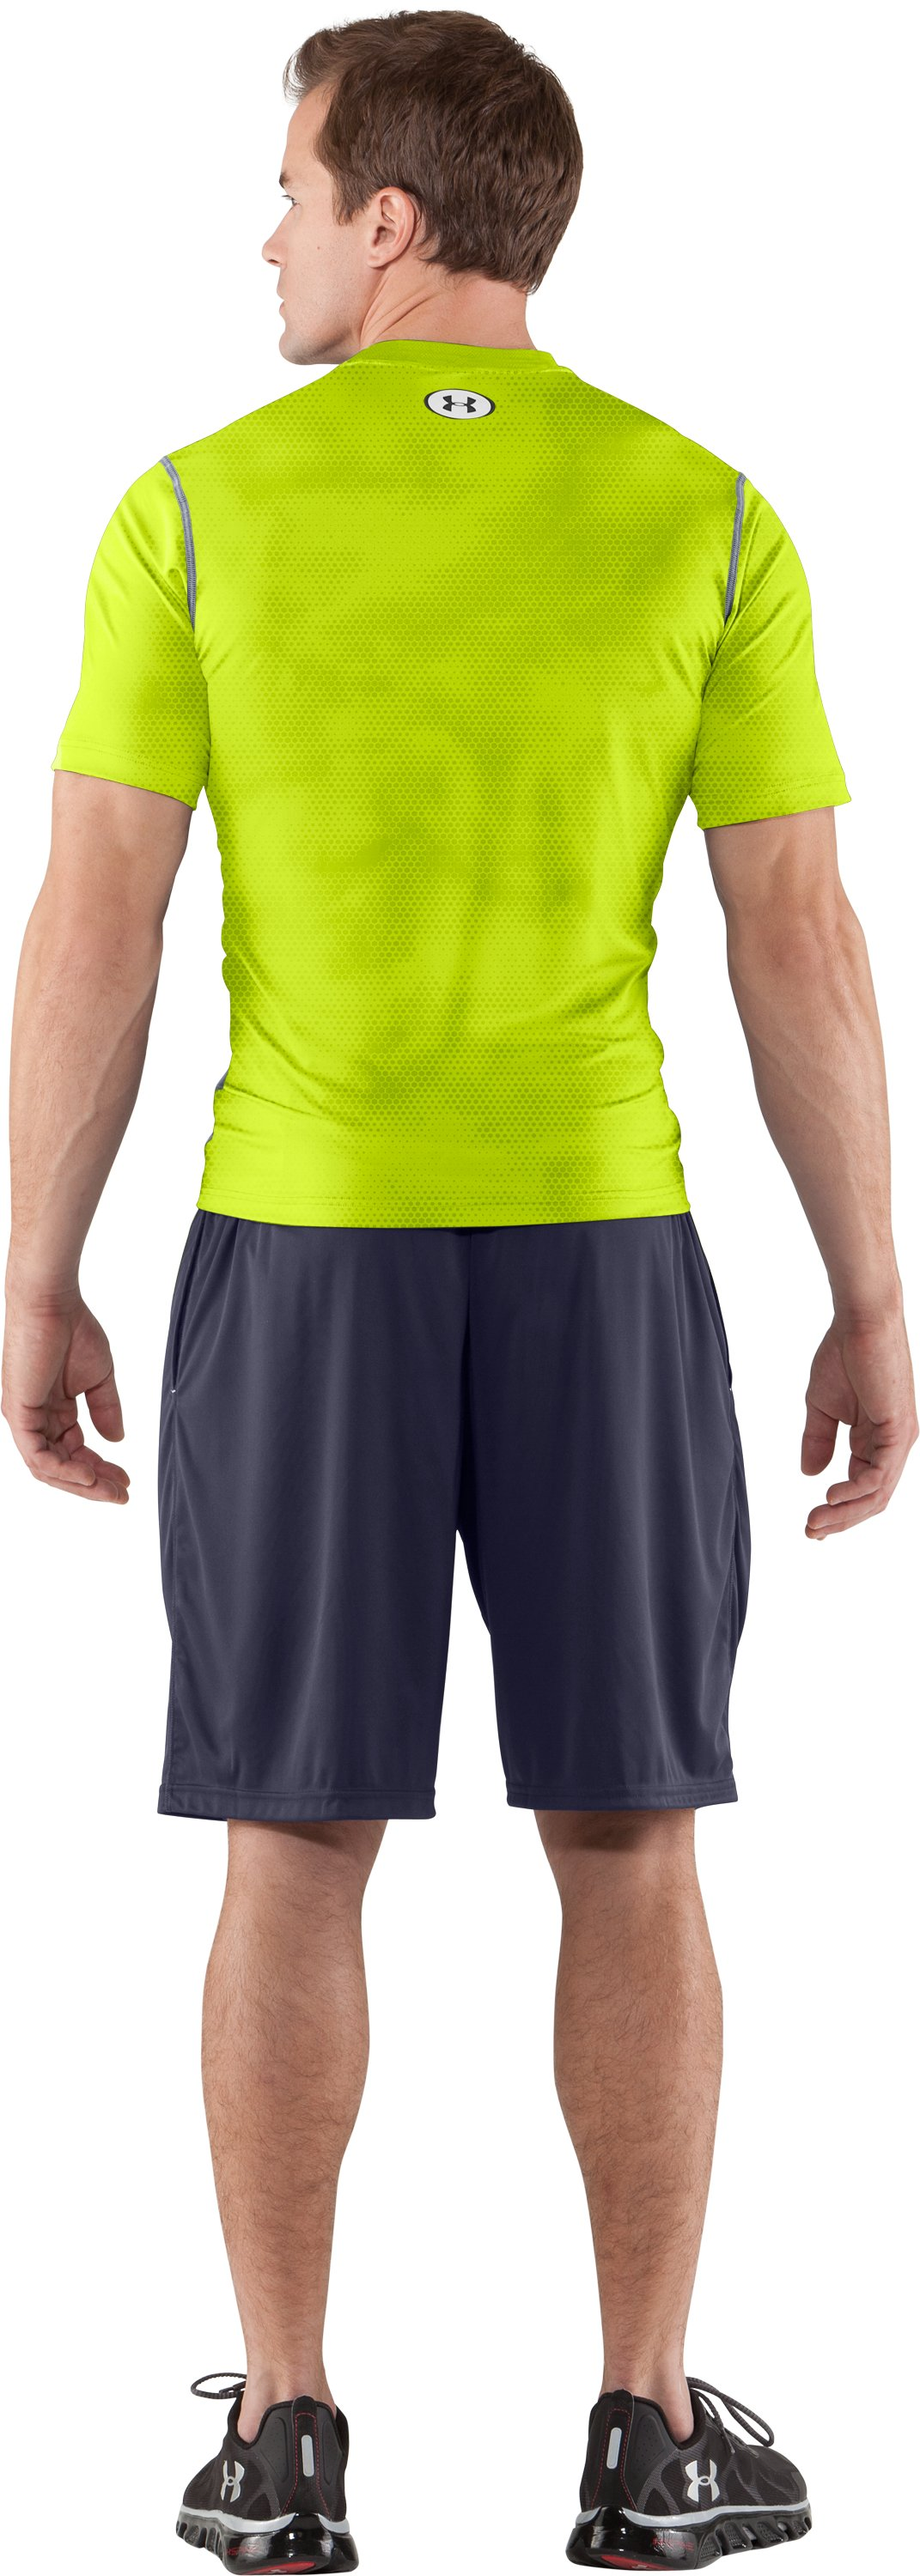 Men's HeatGear® Sonic Printed Fitted Short Sleeve, Velocity, Back